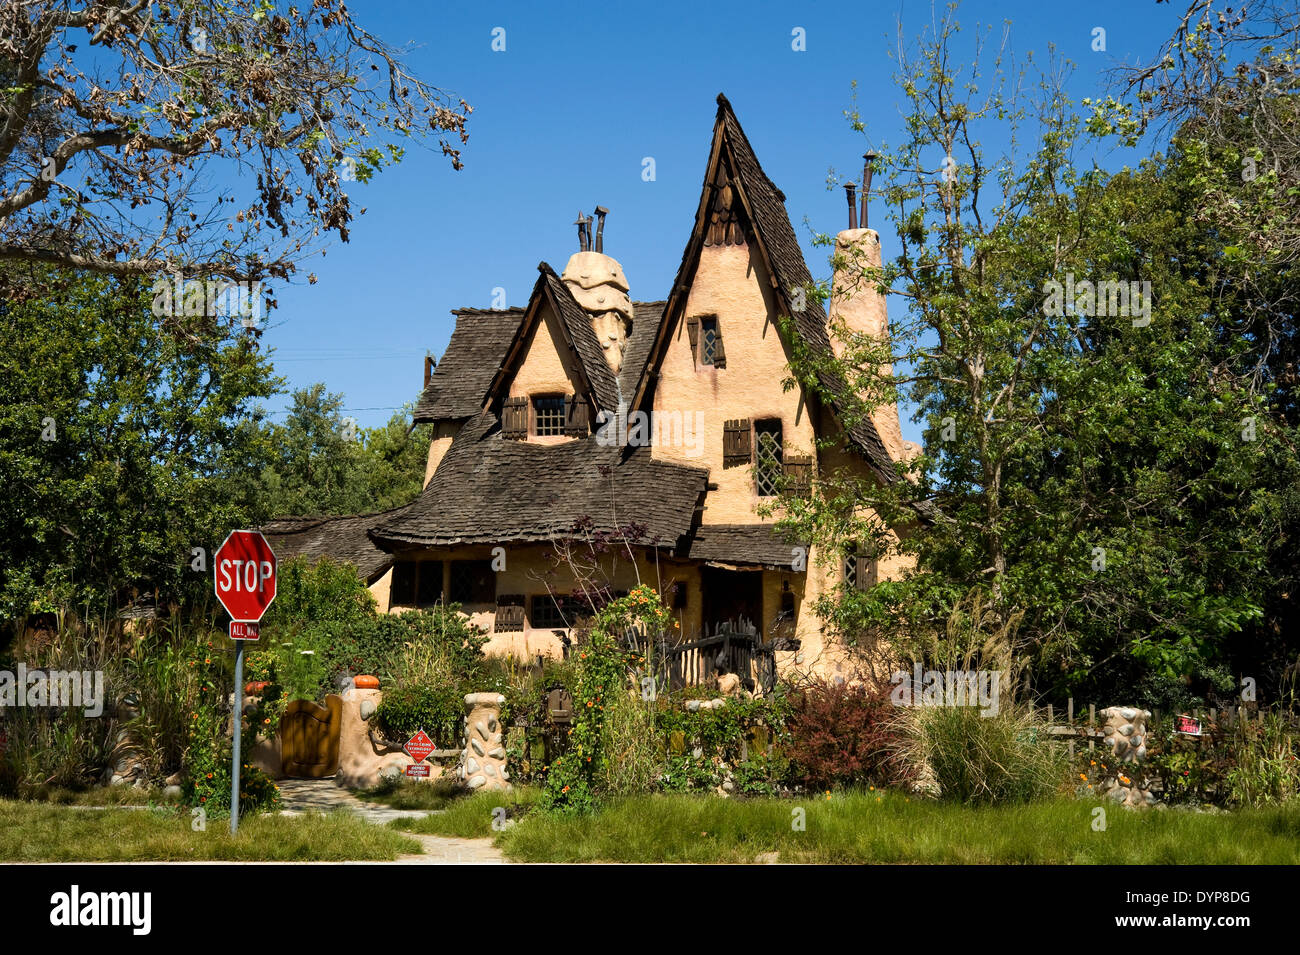 The Witch House in Beverly Hills, California - Stock Image